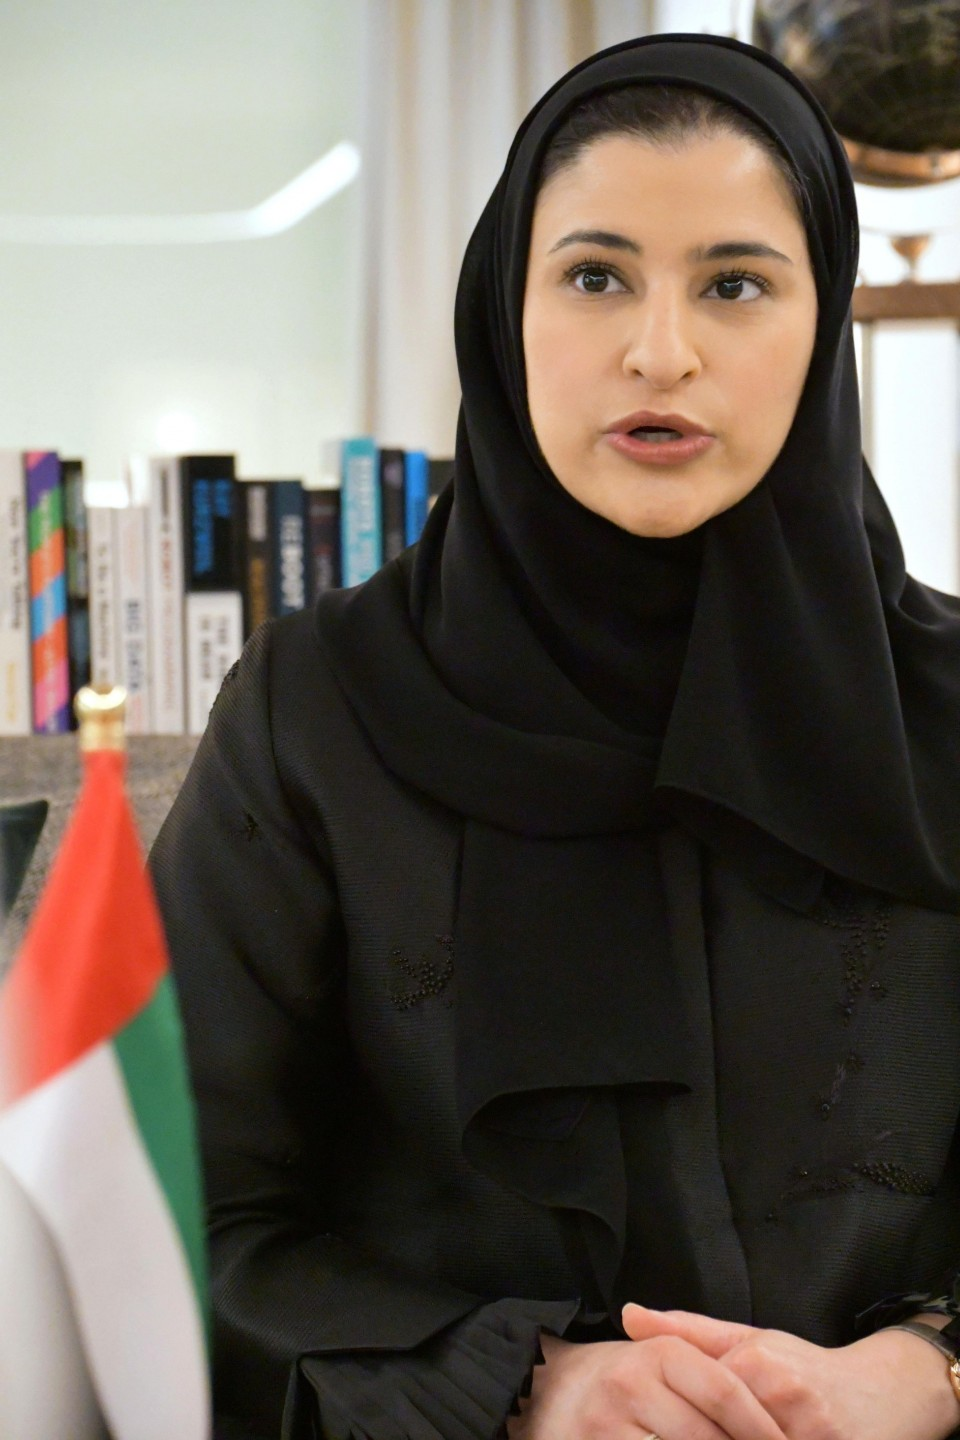 - photo l - UAE, oil-producing Arab countries turn to space development